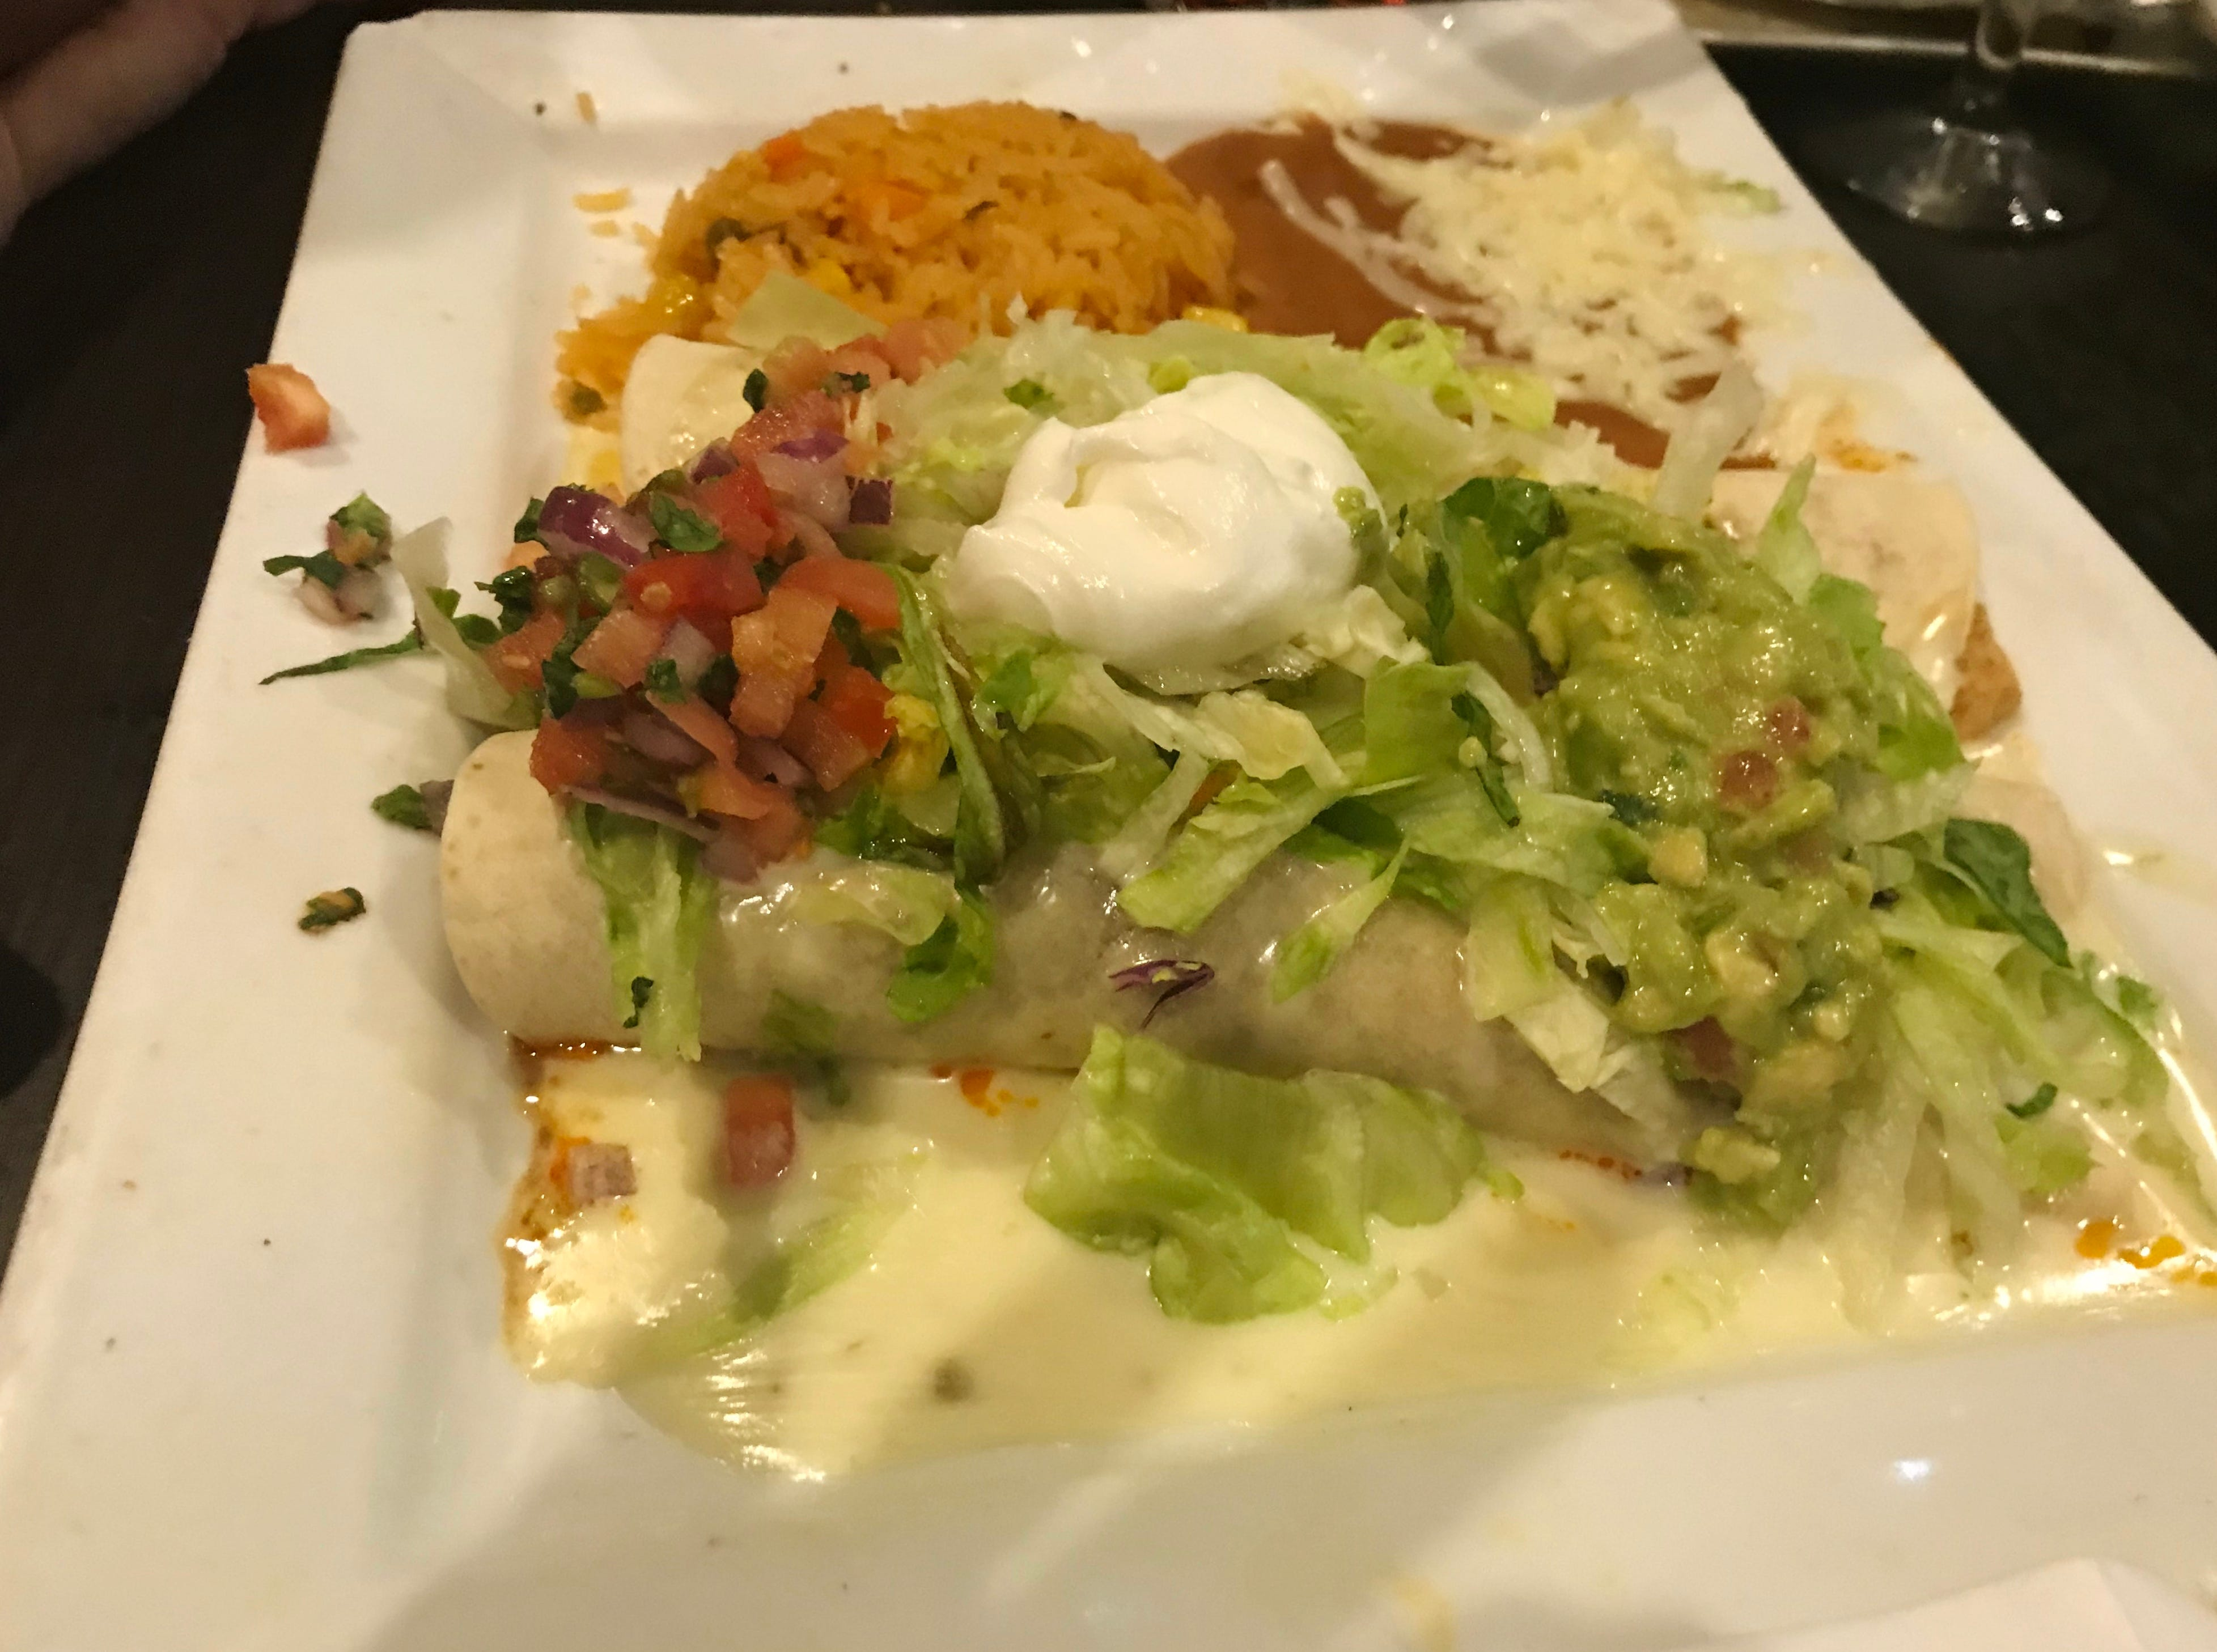 Casa Amigos Burrito Deluxe with beef and chicken was hearty and delicious.